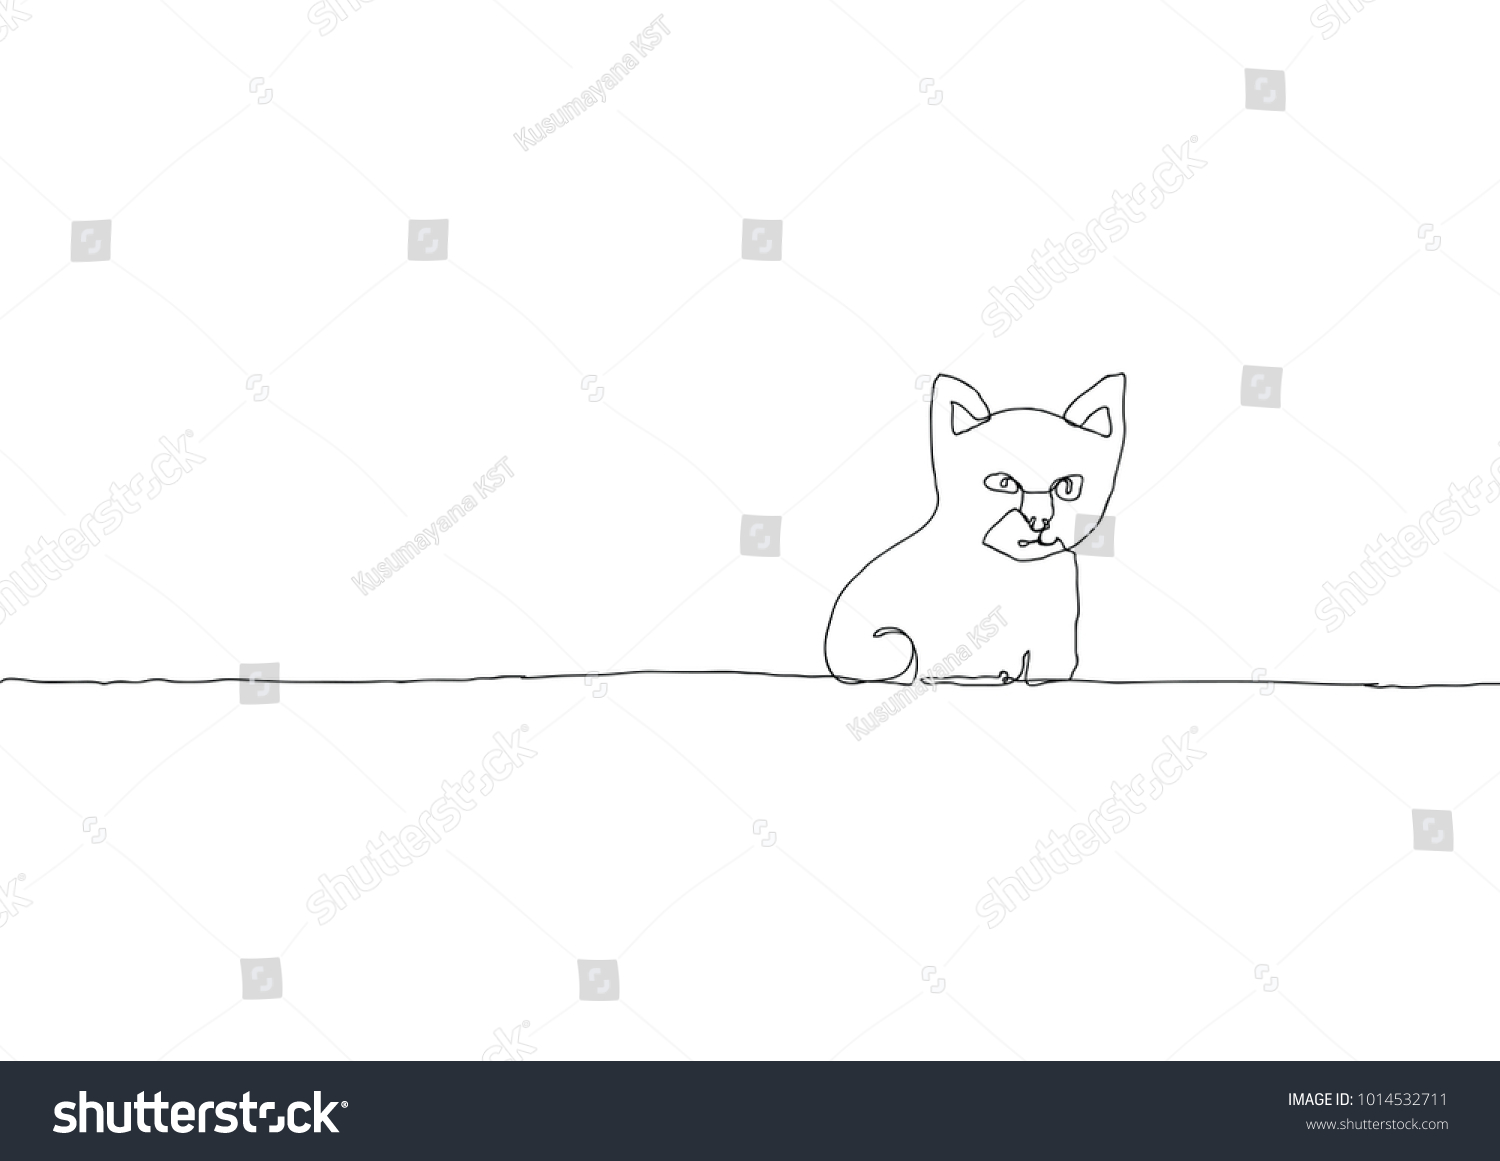 Simple Continuous Line Art : Cat continuous line drawing simple stock vector 1014532711